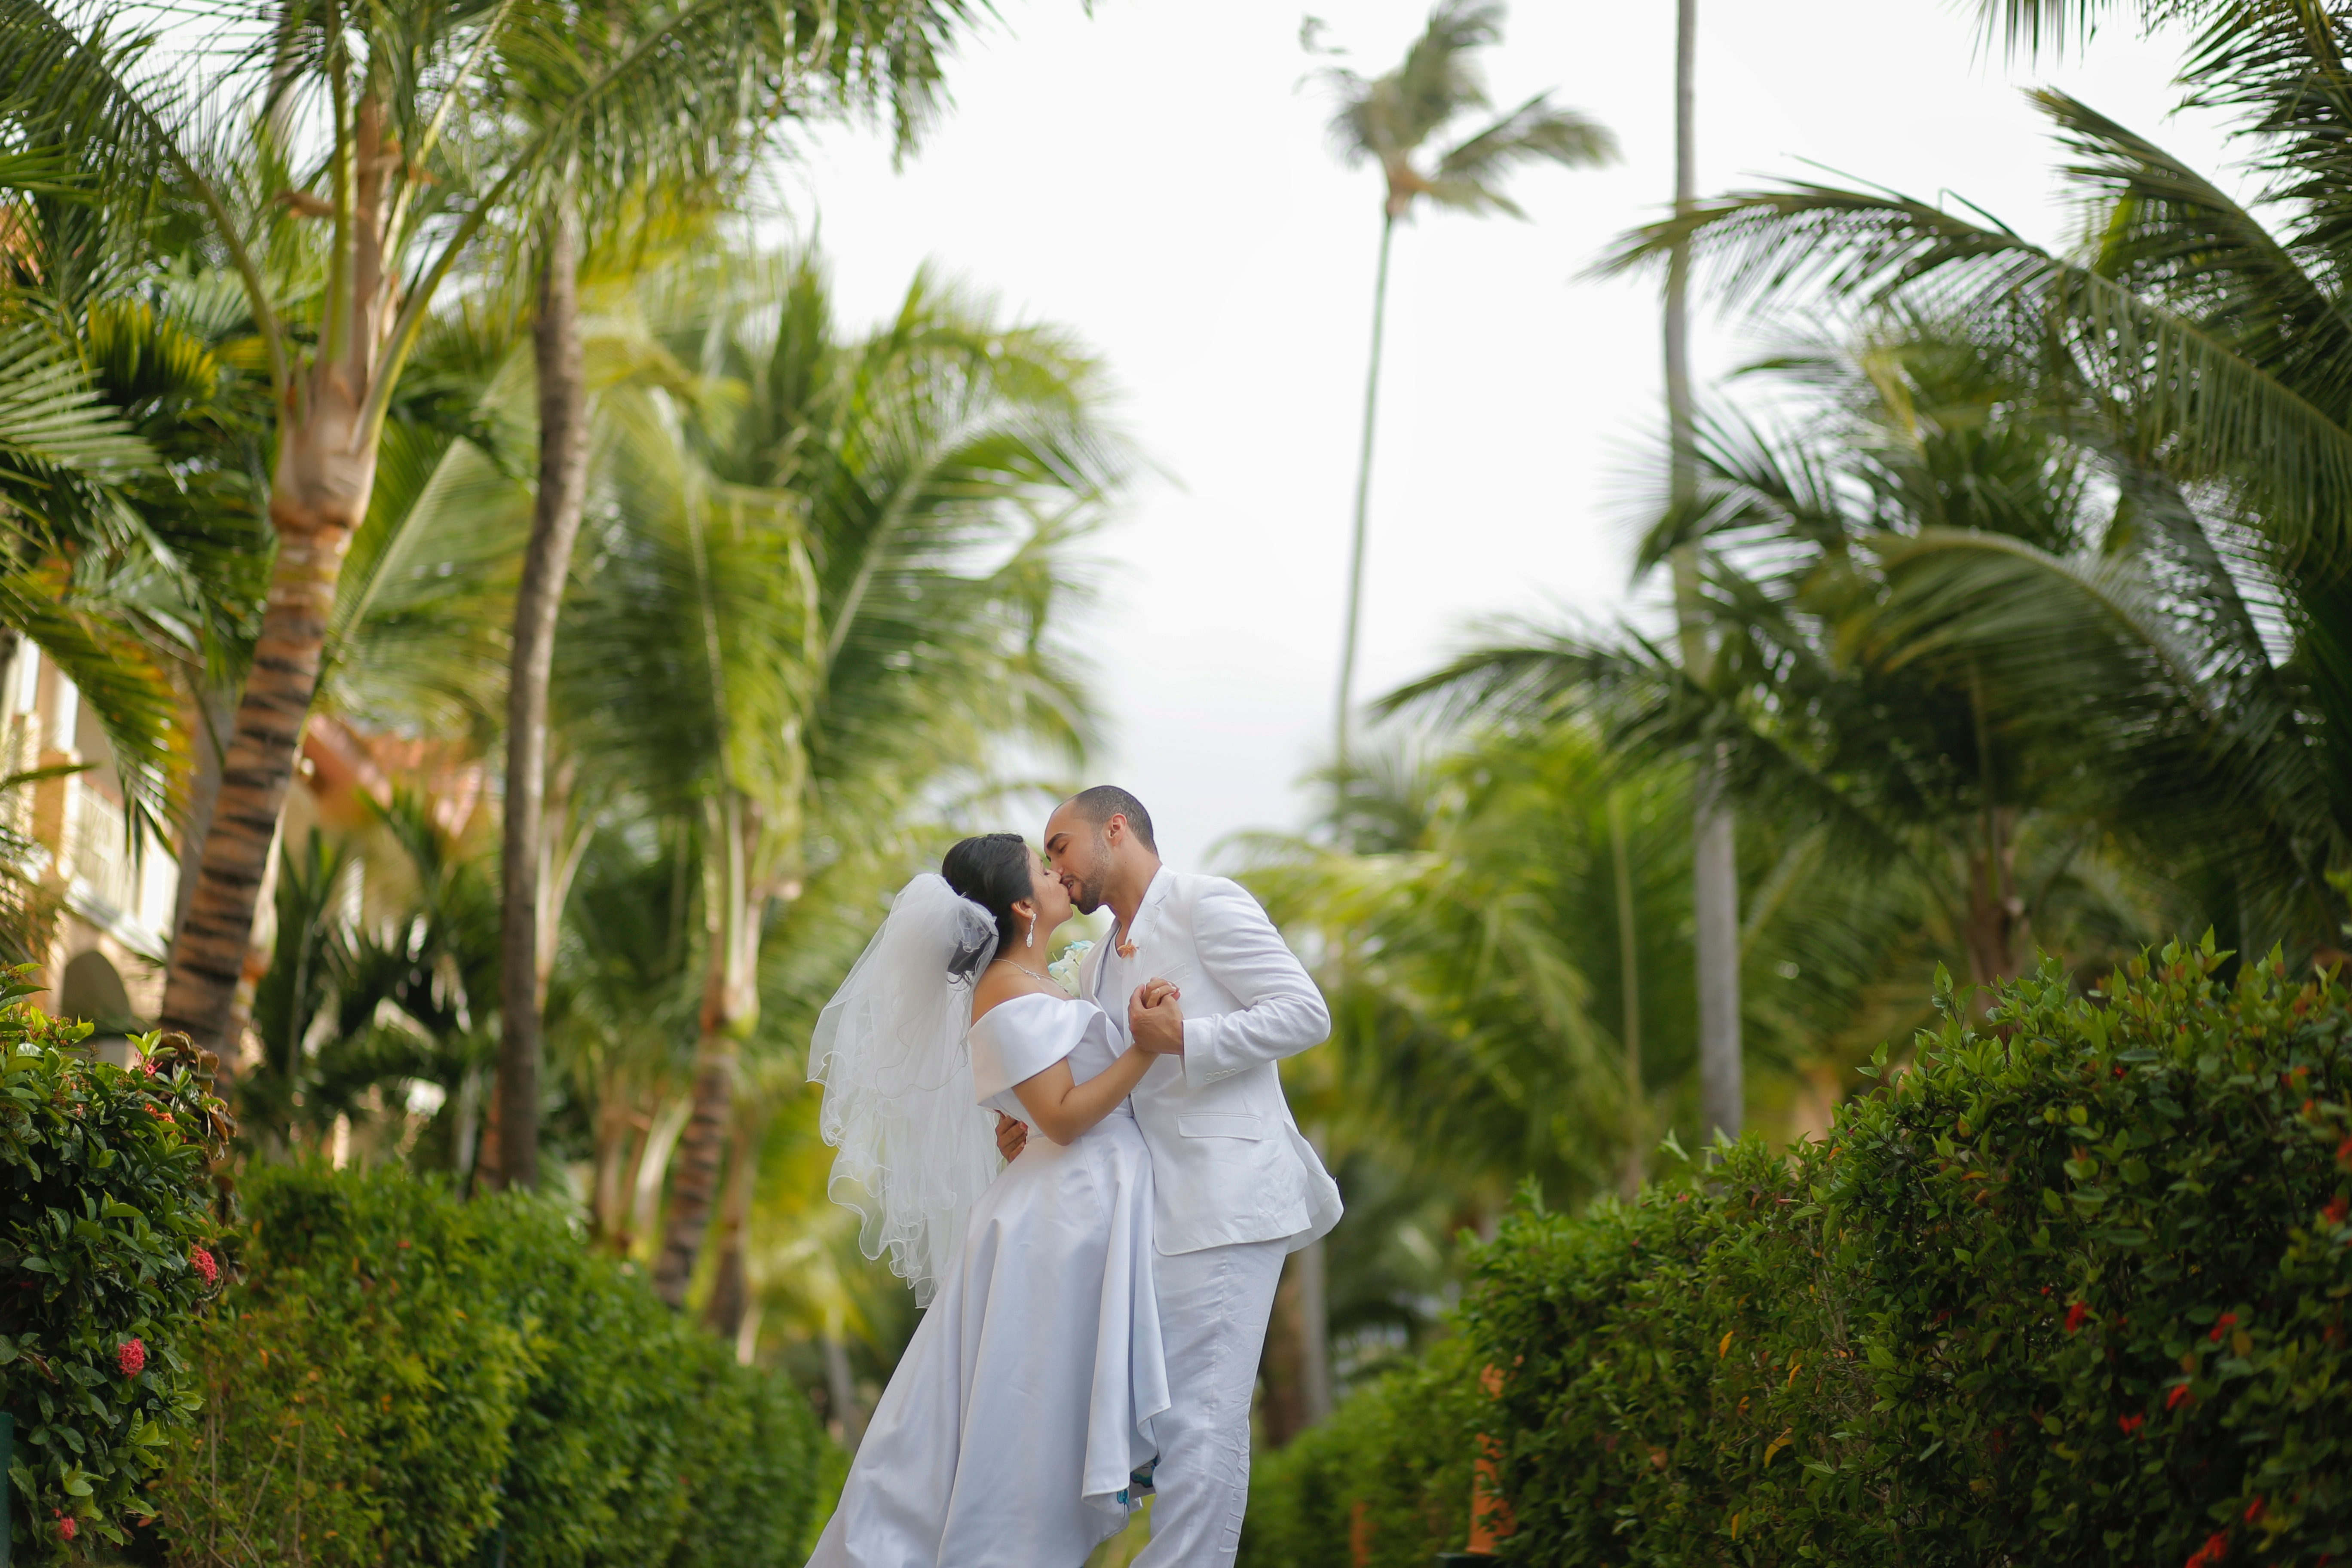 How To Choose Your Resort For An All-Inclusive Destination Wedding